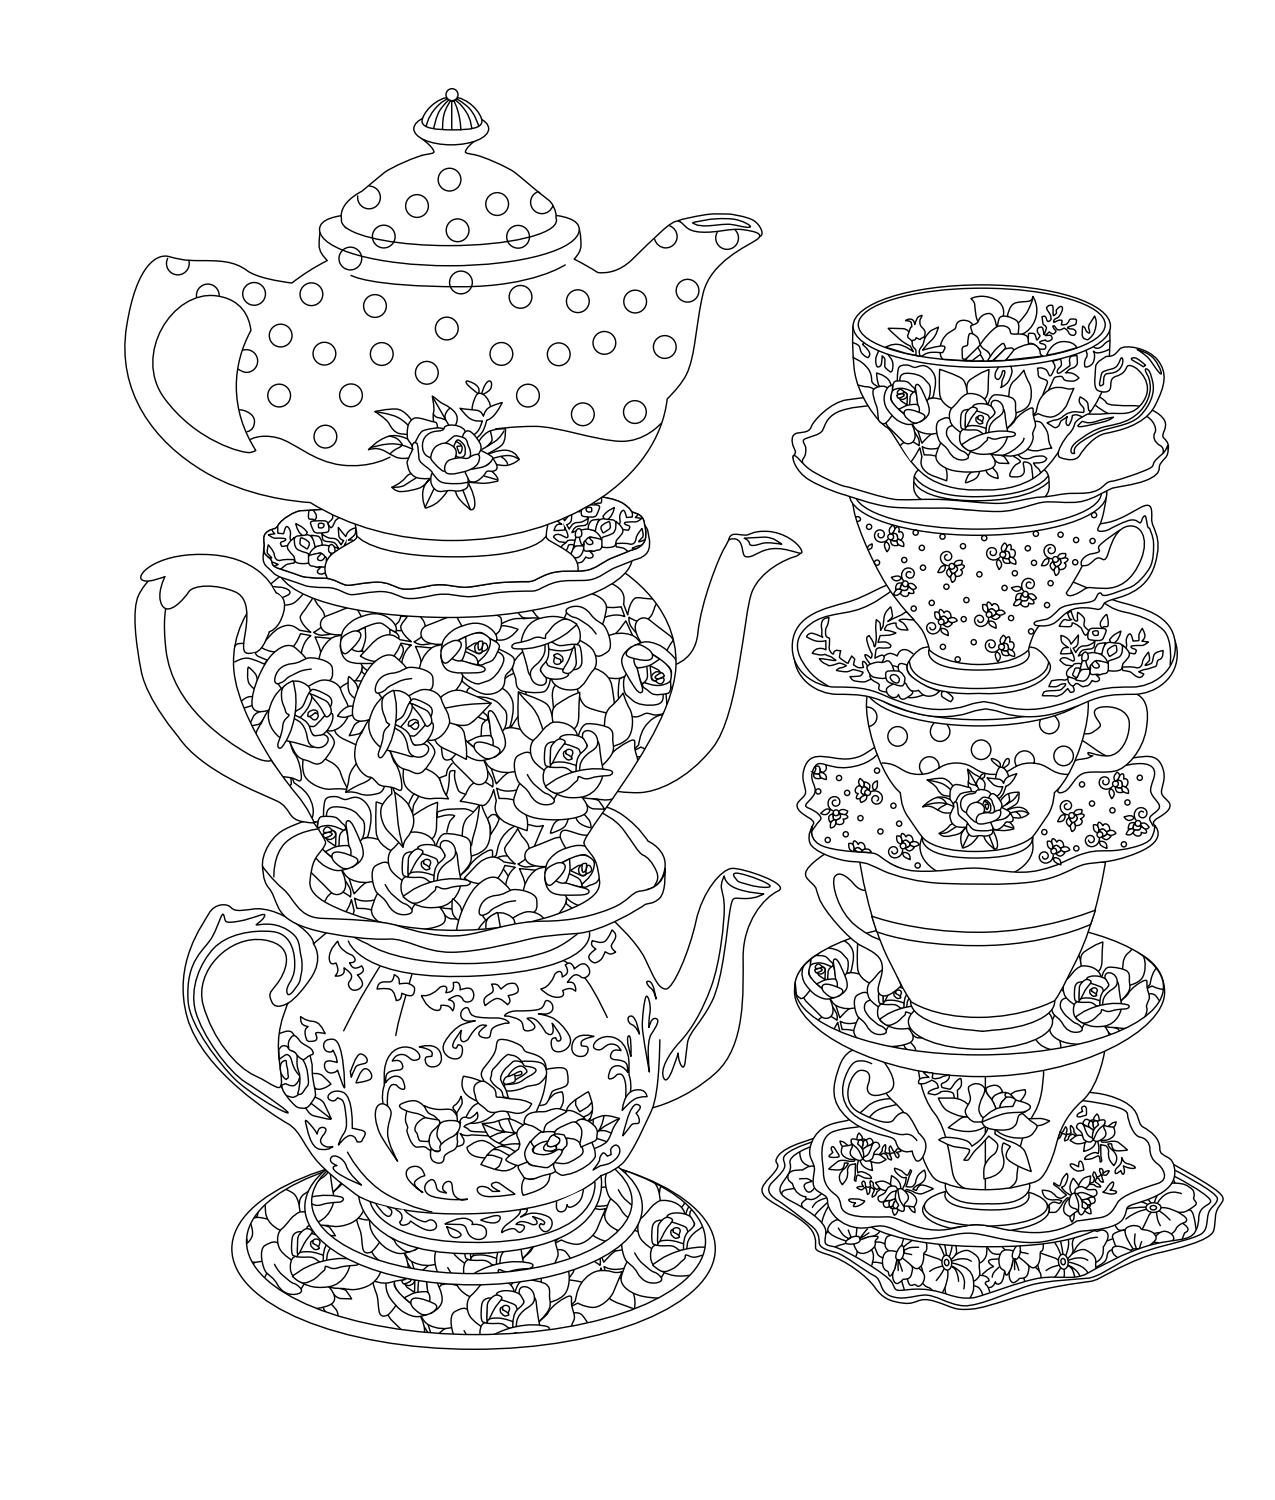 tea party colouring pages tea party coloring pages pages party colouring tea